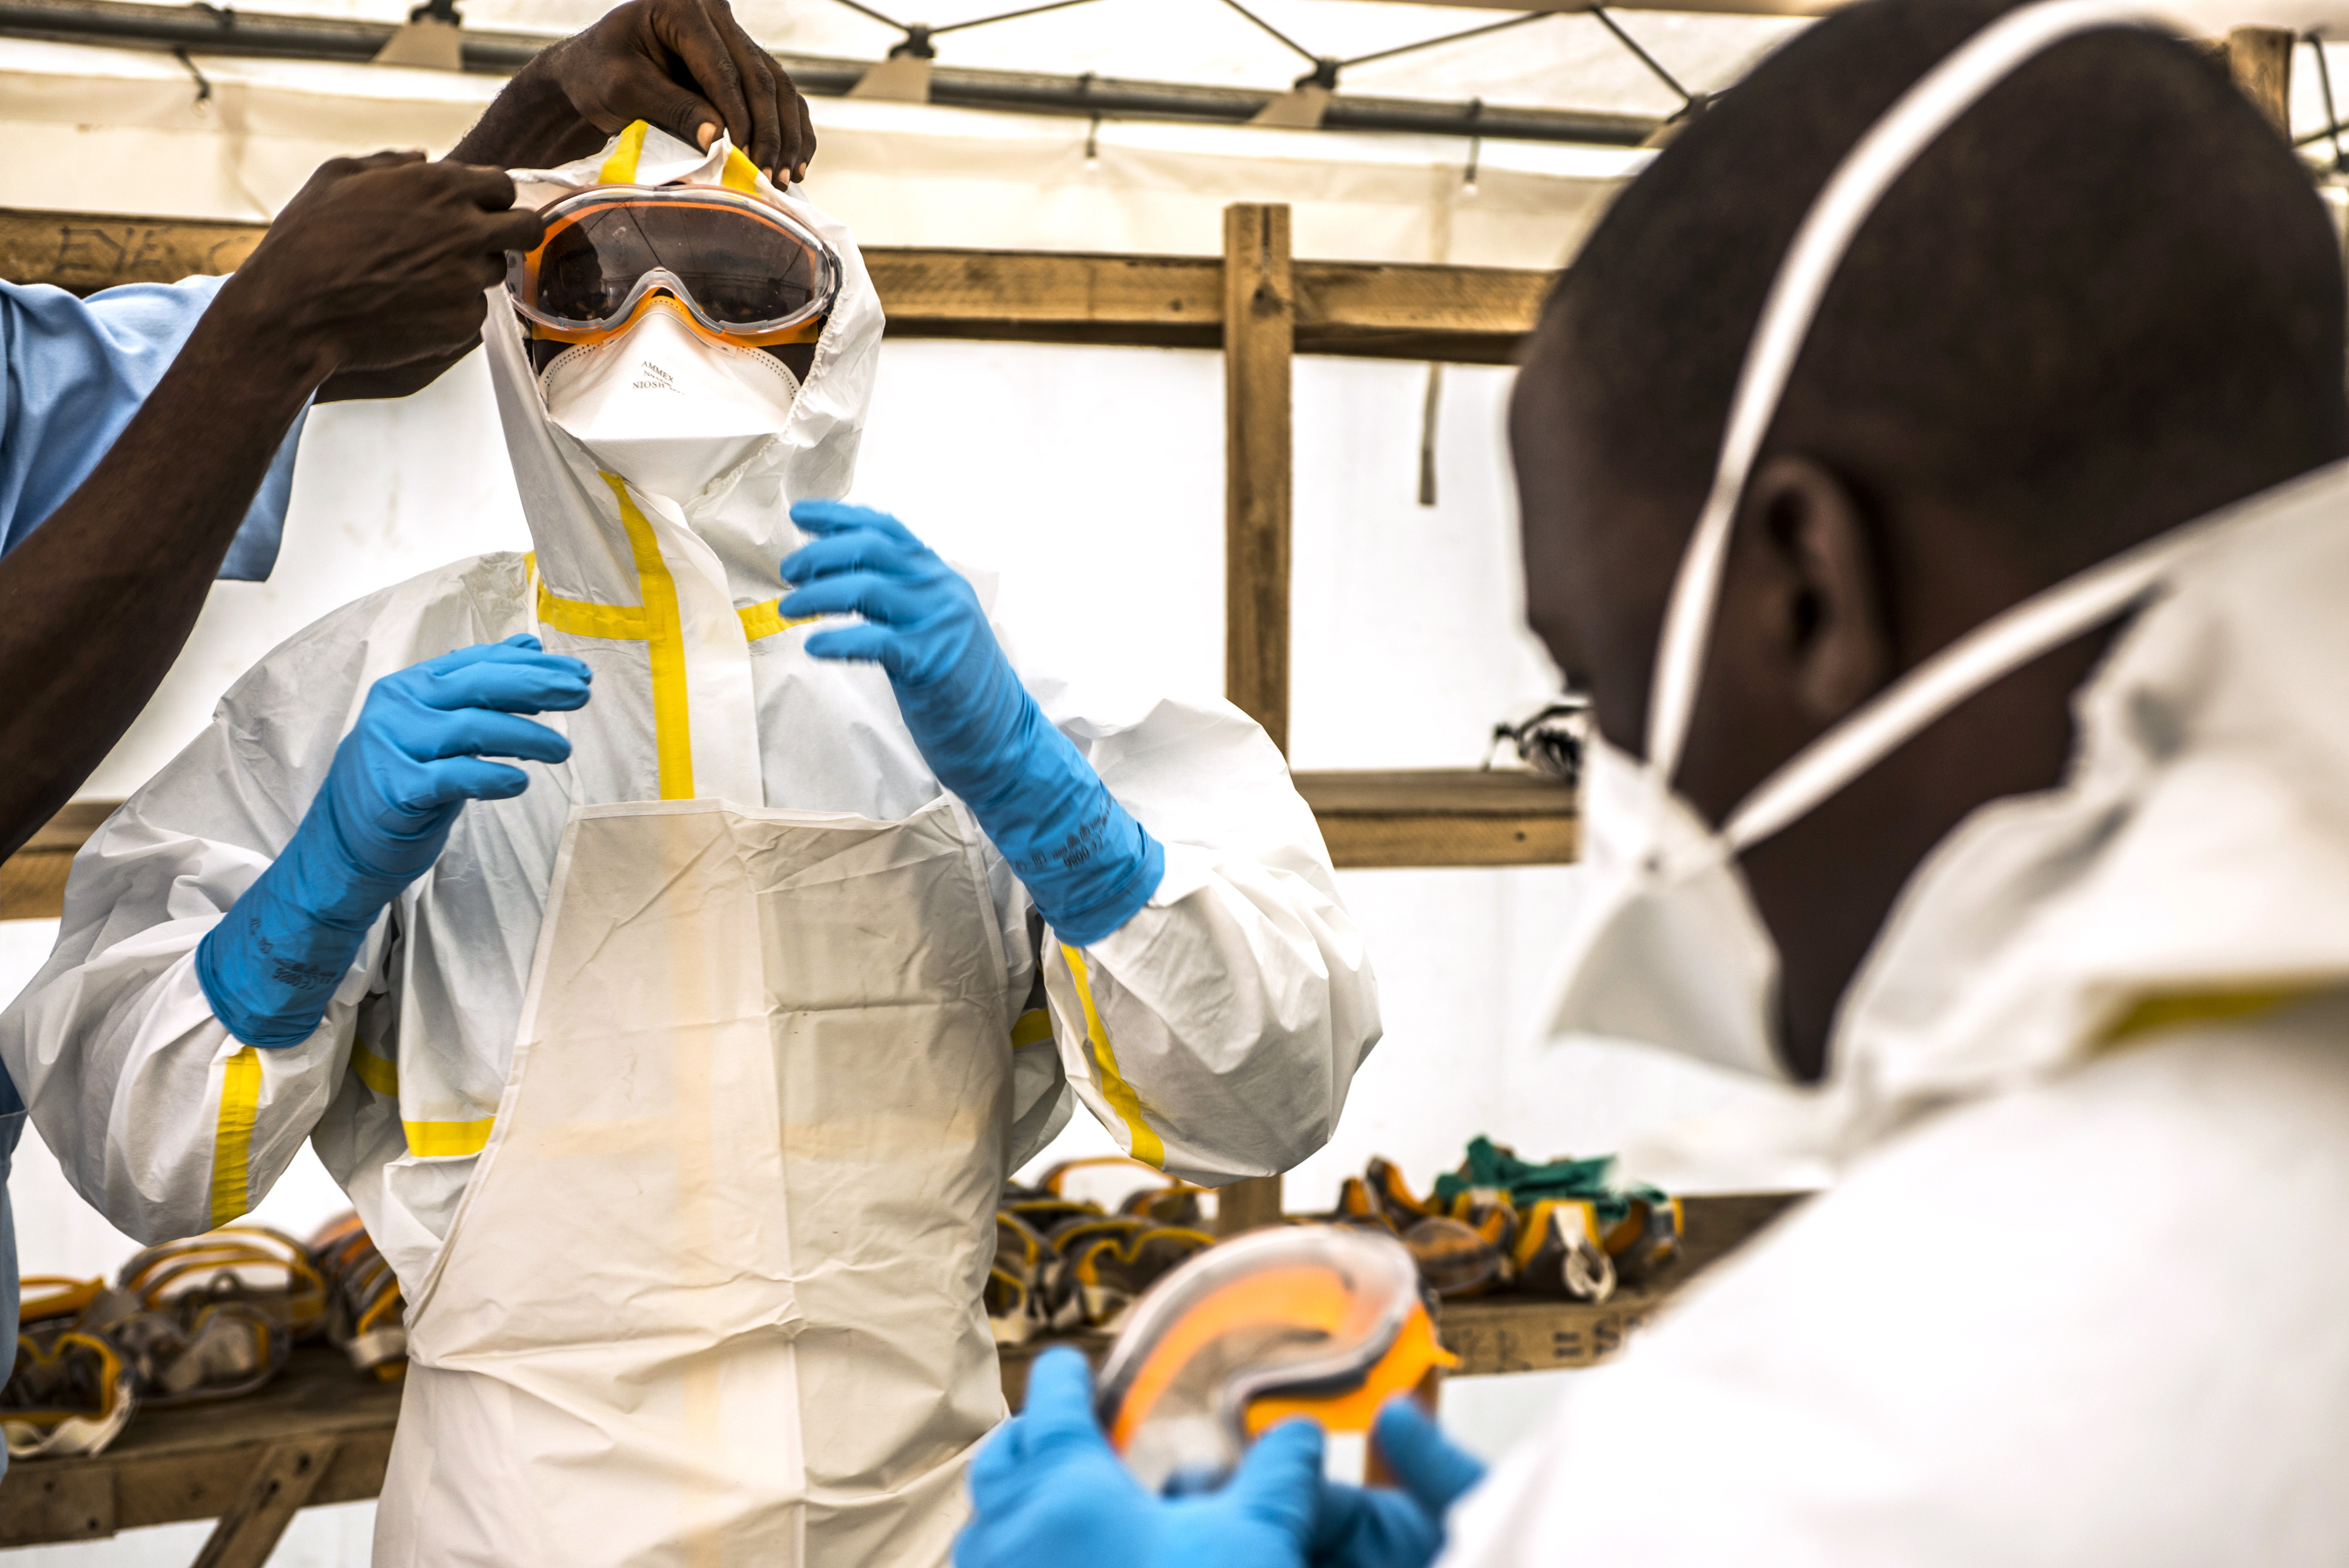 A healthcare worker helps a colleague dress in protective gear at an Ebola treatment center in Guinea, Sept. 10, 2015